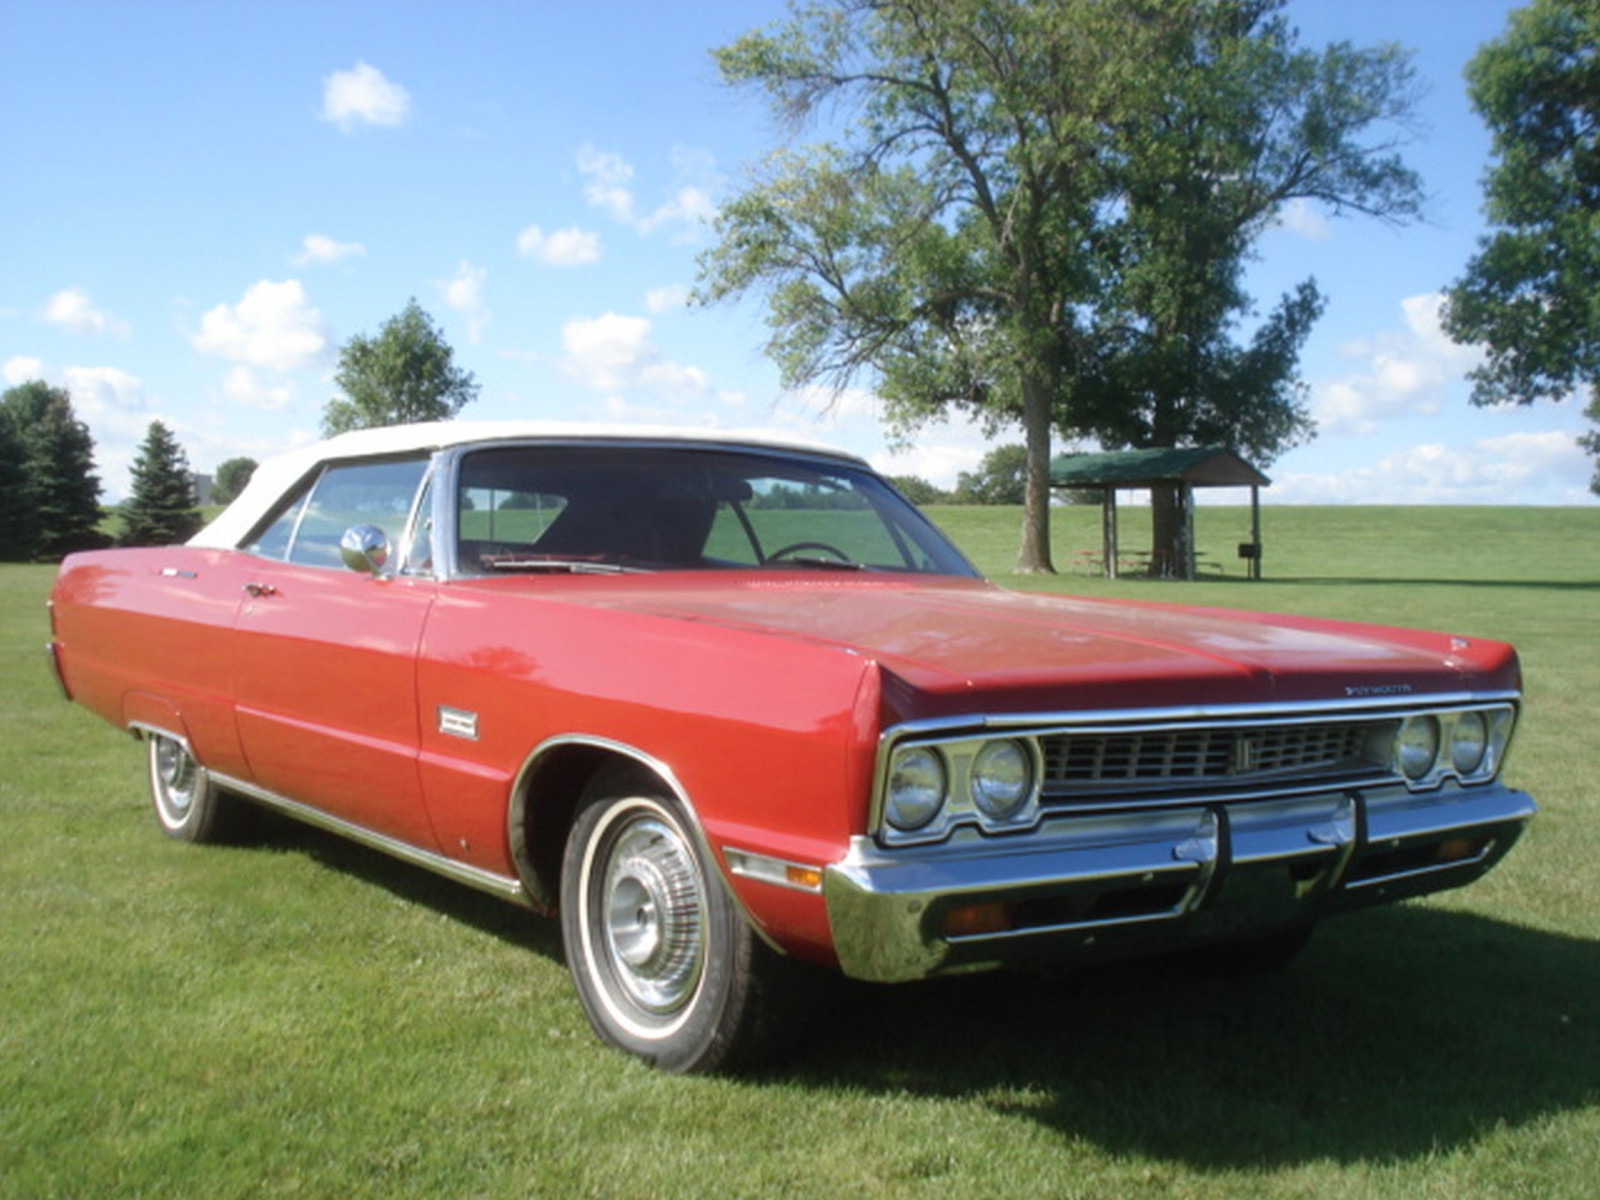 1969 Plymouth Sport Fury Convertible - Image 1